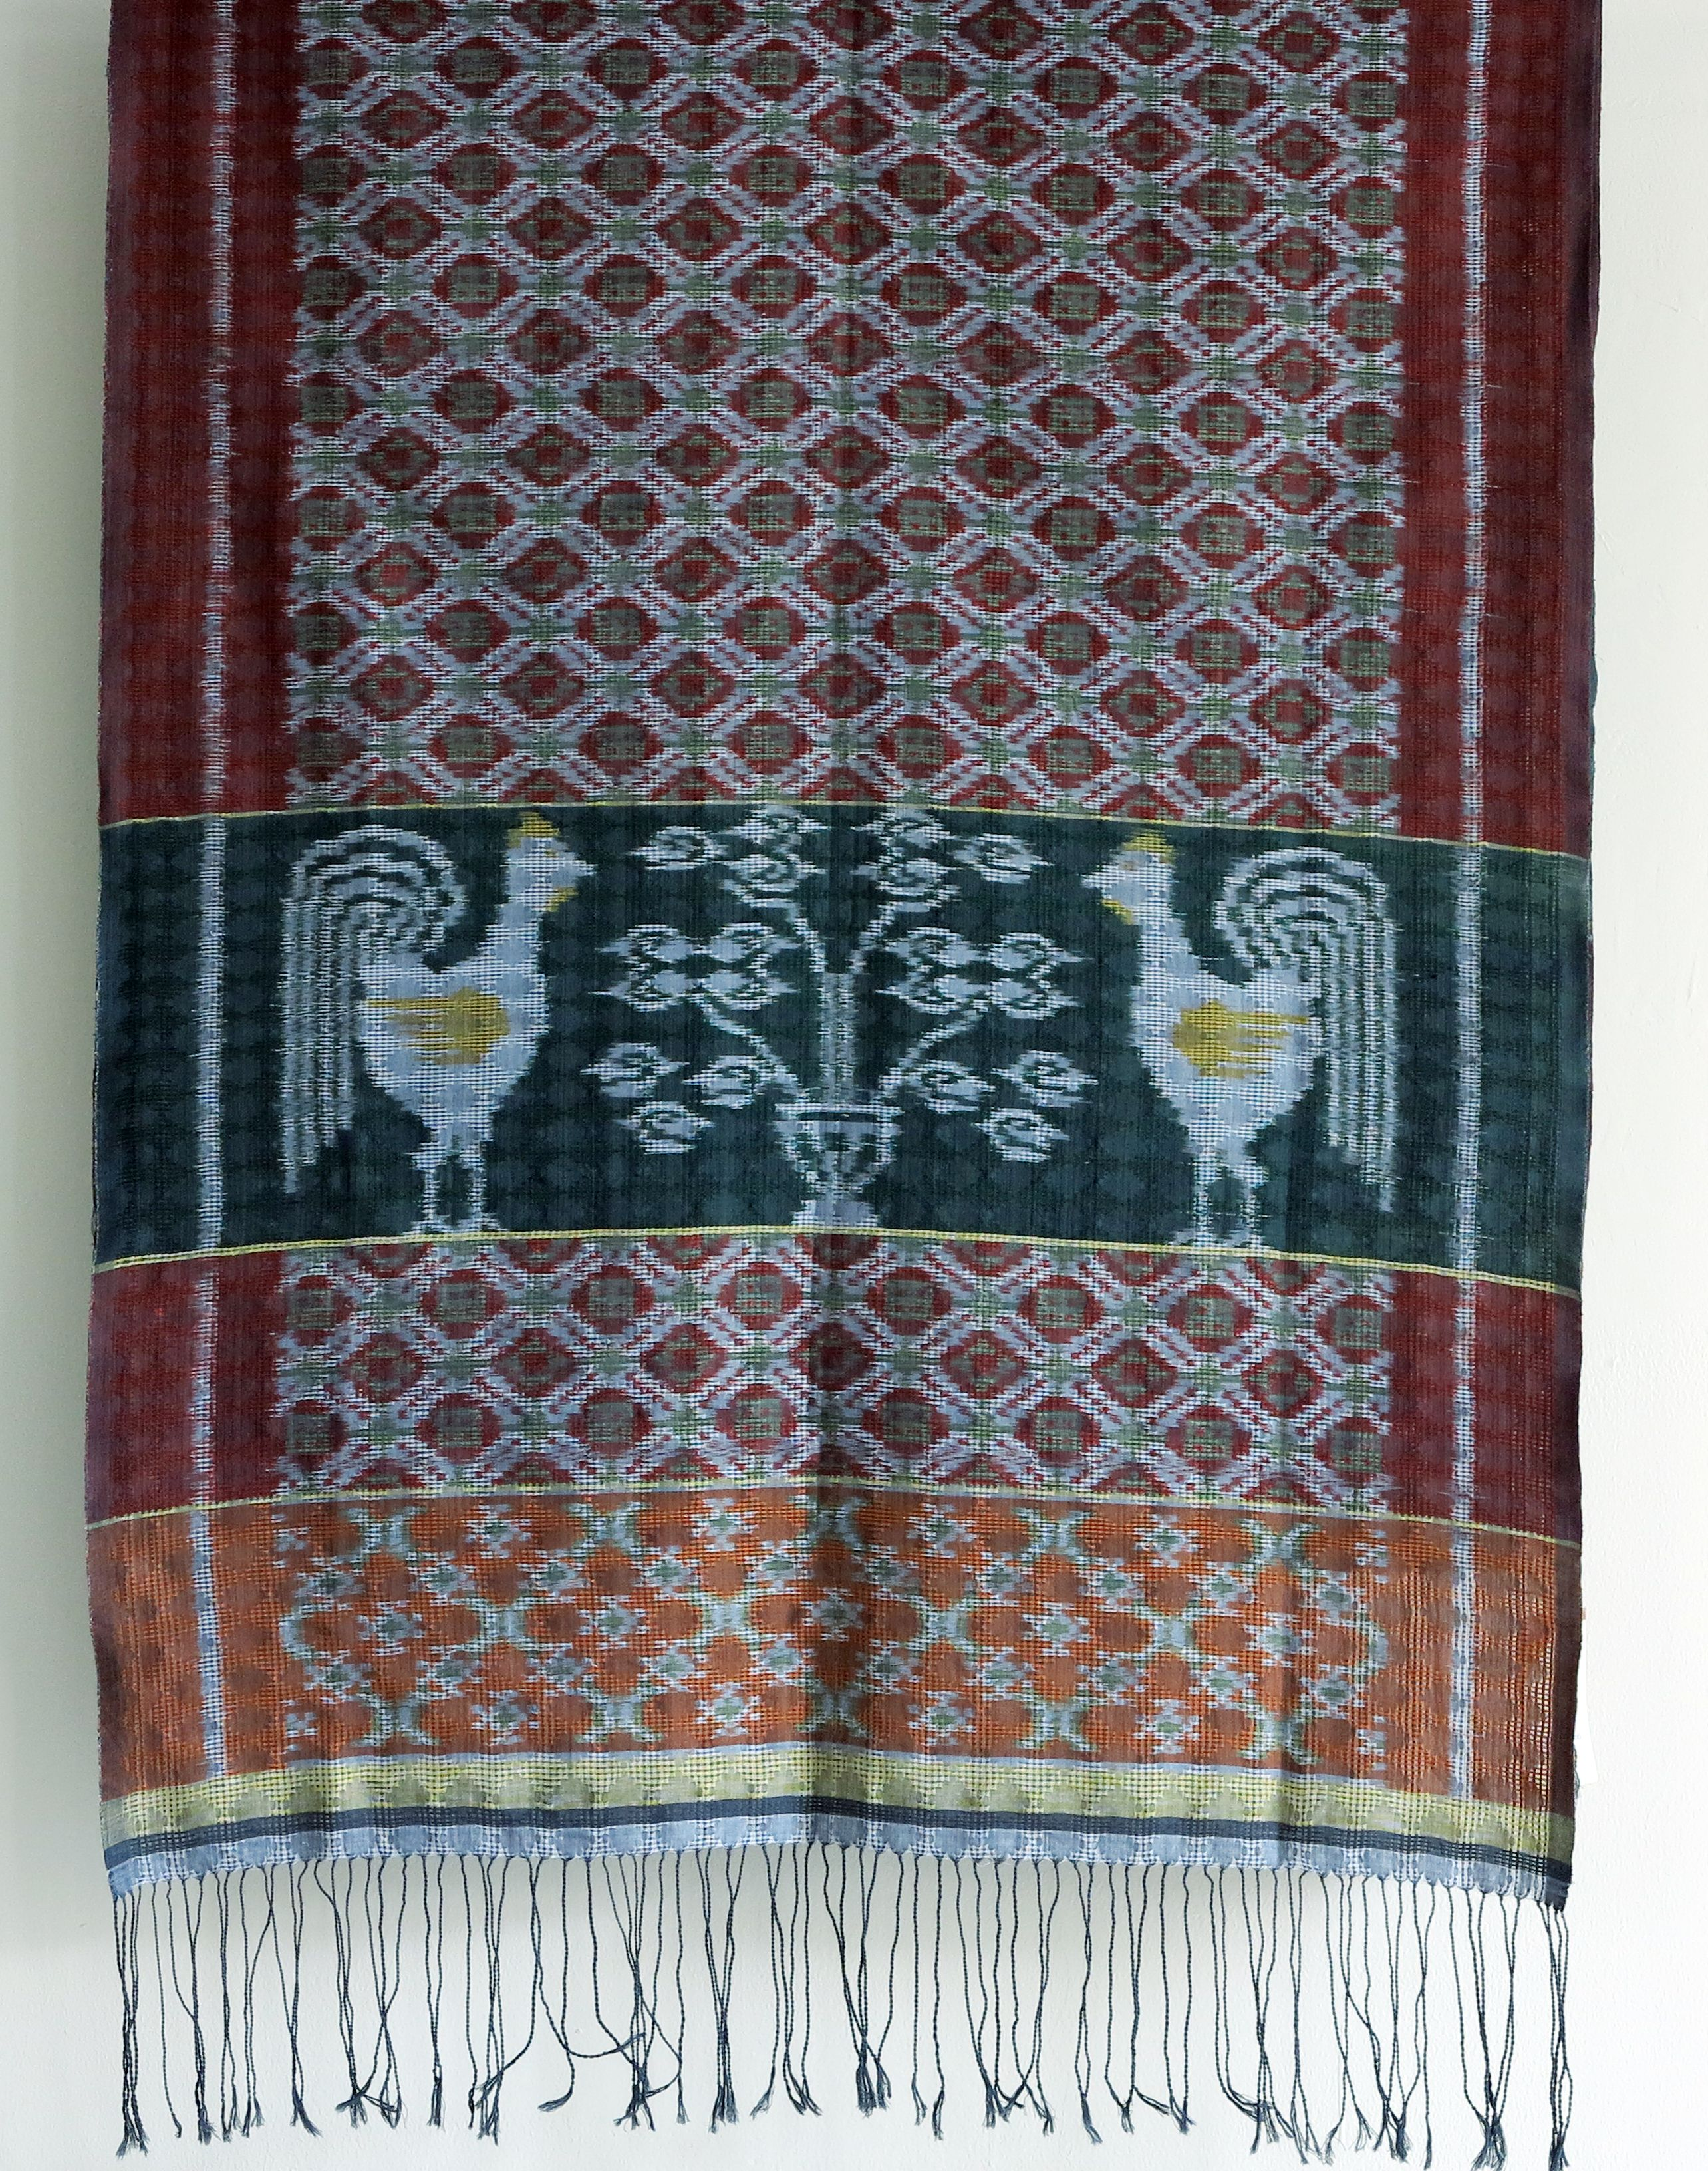 Shoulder Cloth From Sumba Mid Indonesia In Faunal Design The Rooster Pattern